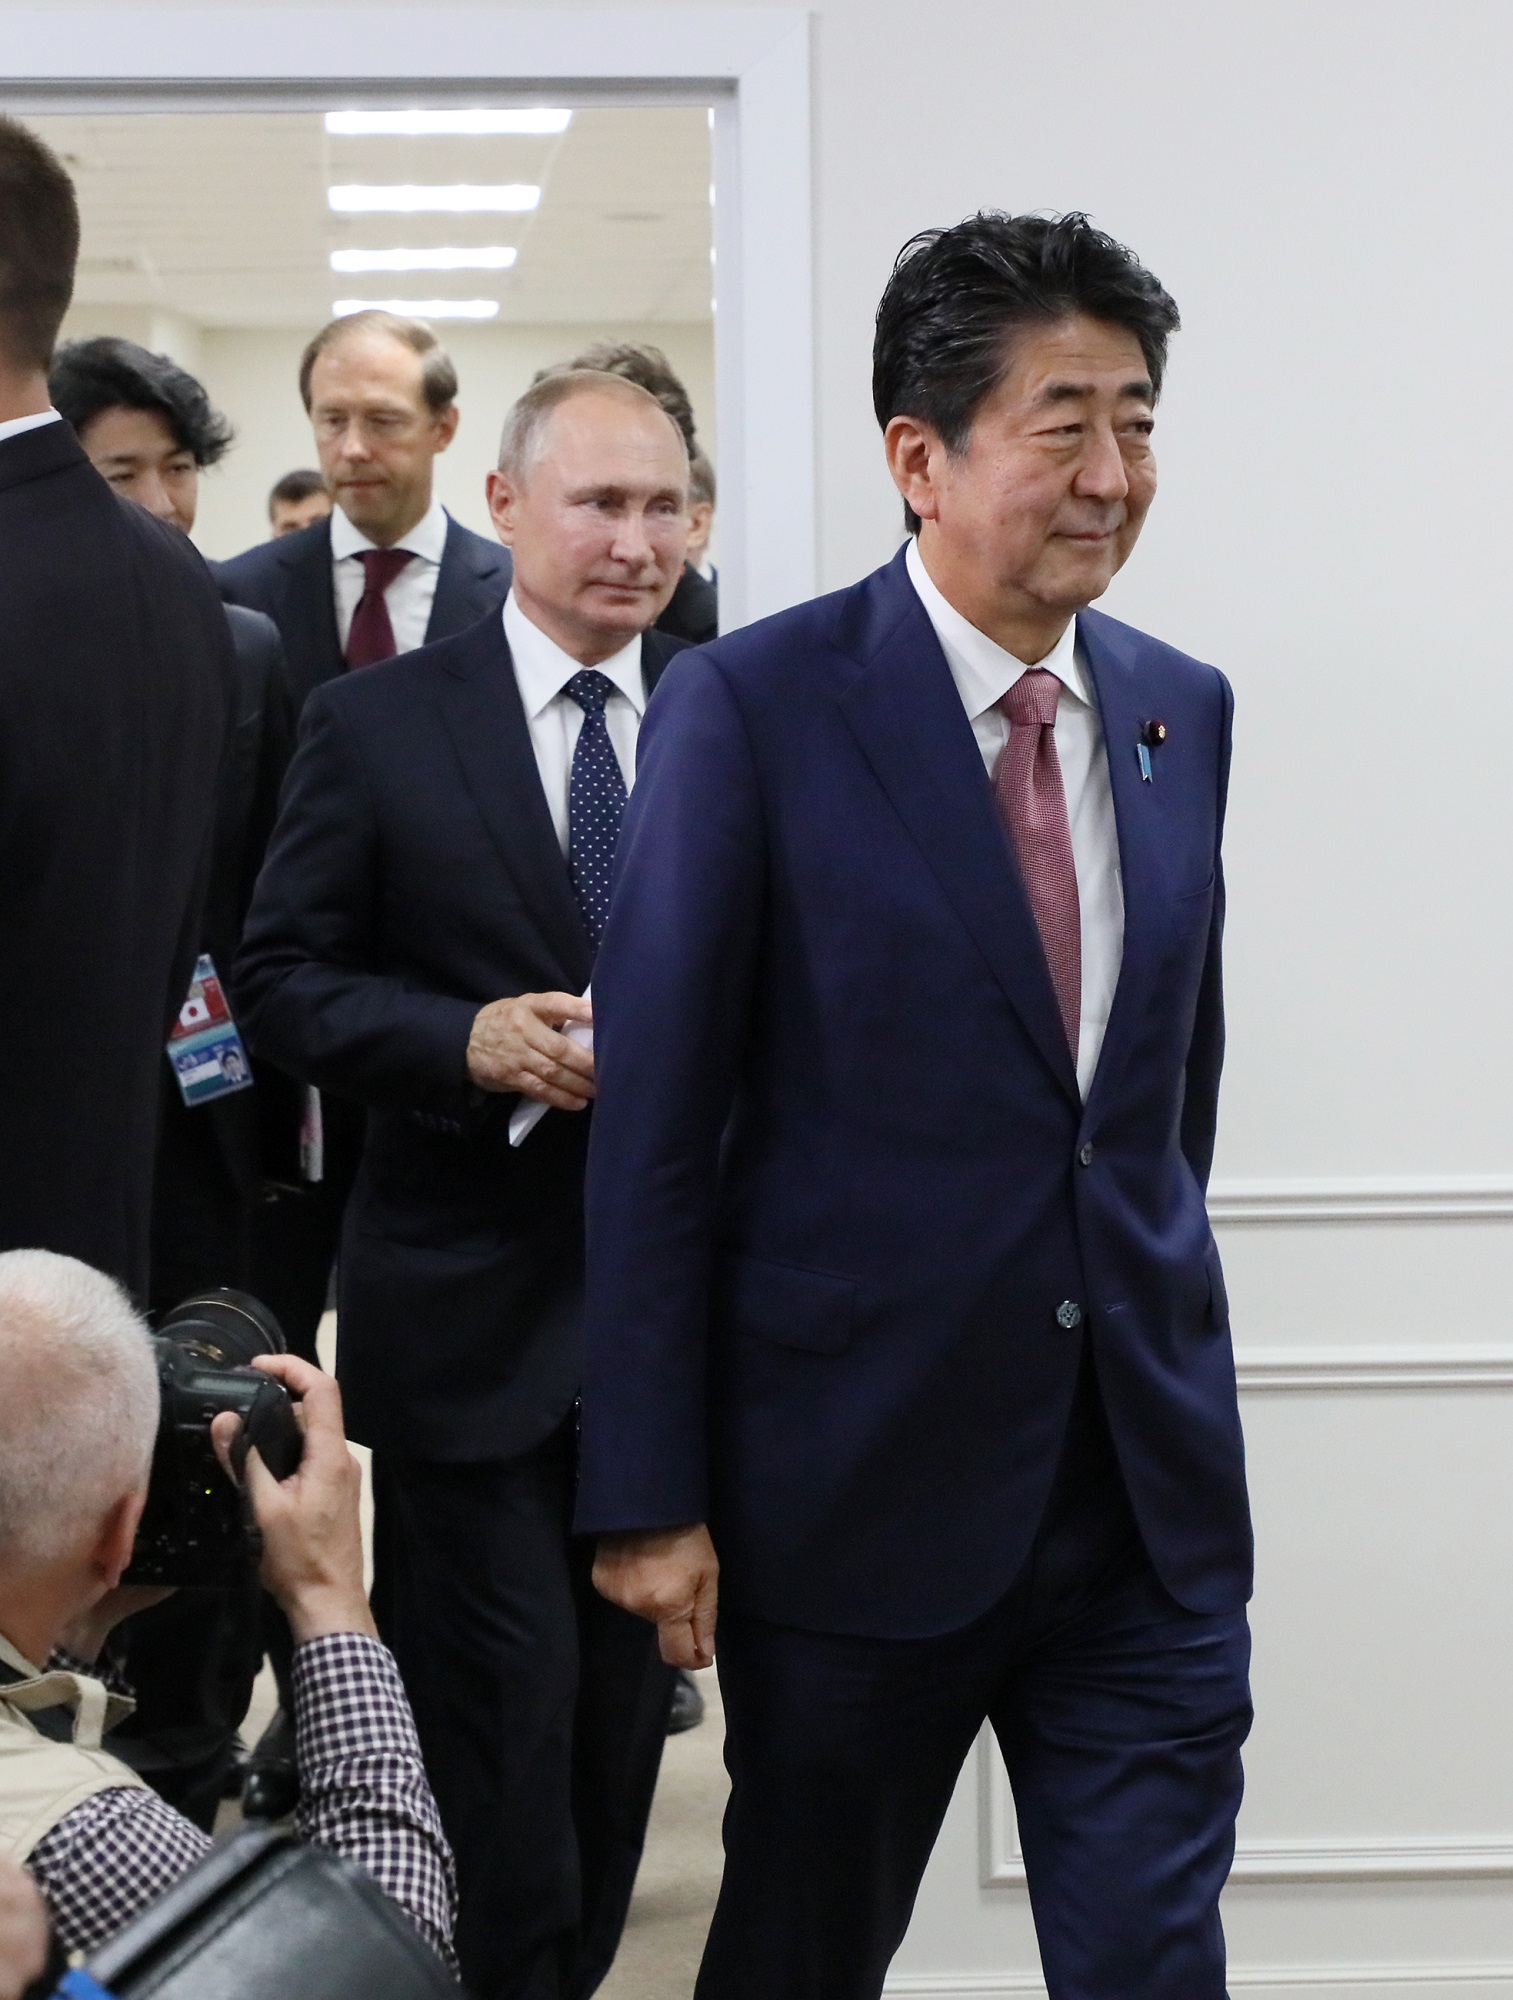 Photograph of the two leaders attending the Japan-Russia Summit Meeting